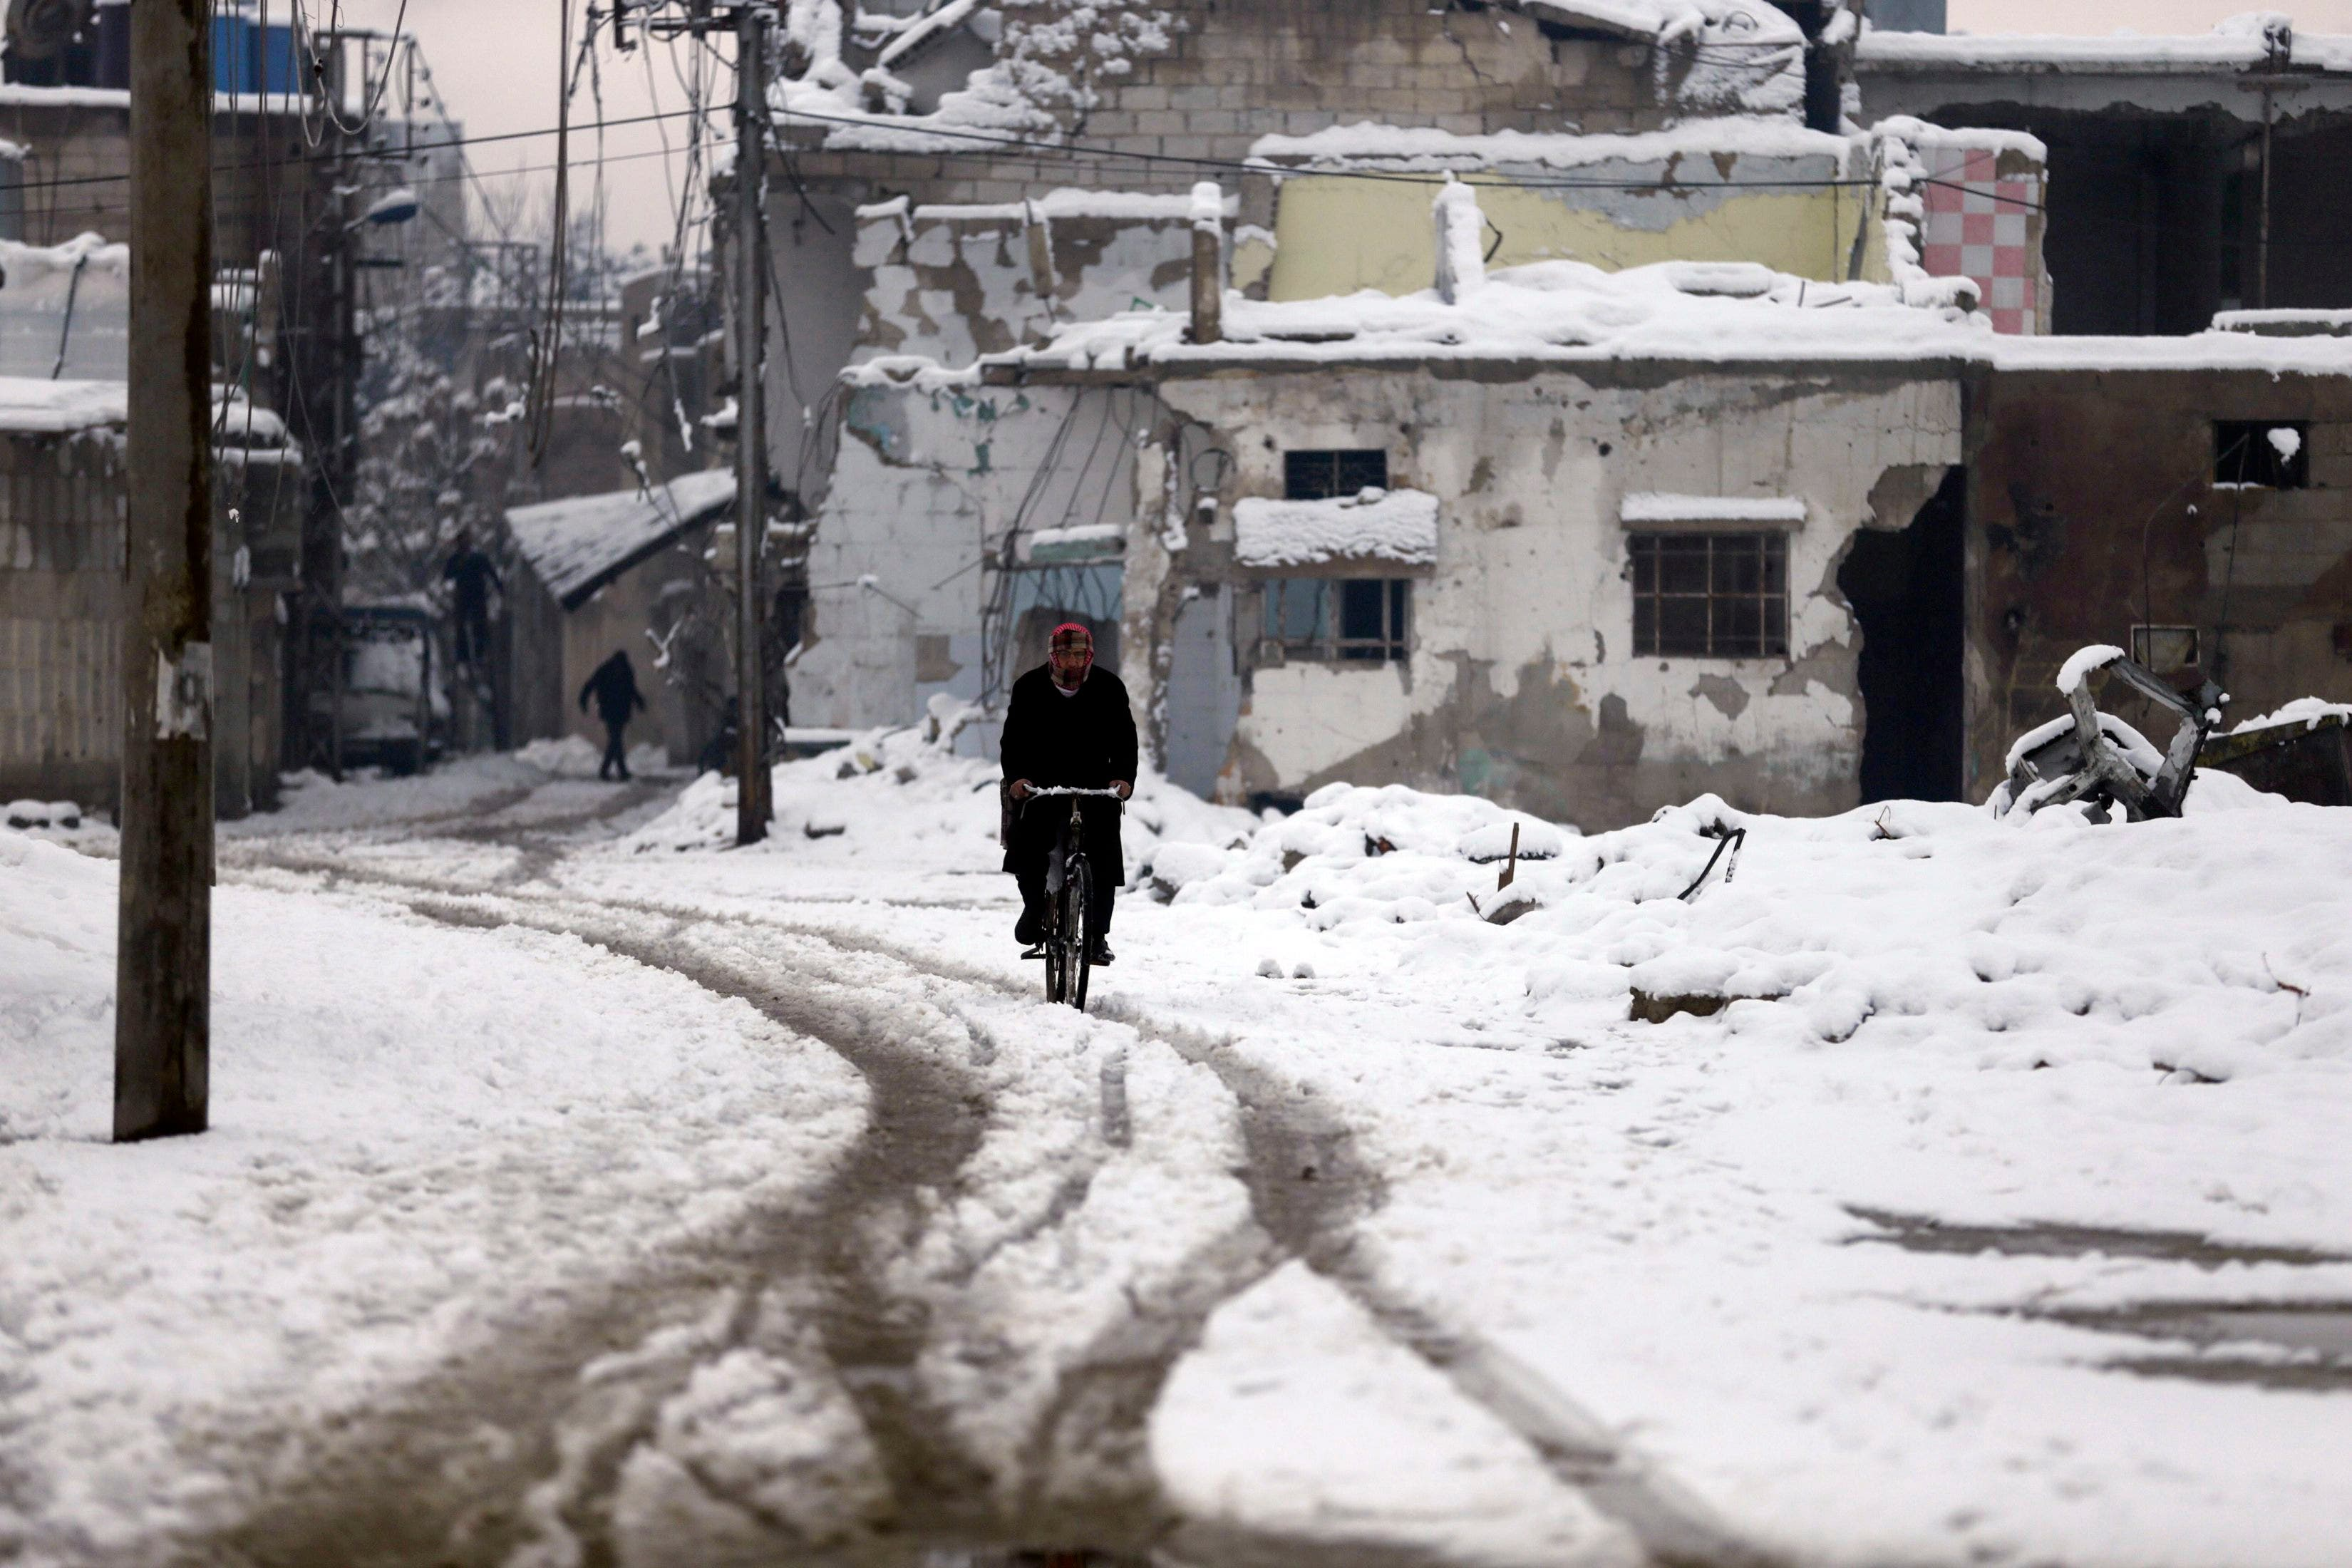 Snow in Syria